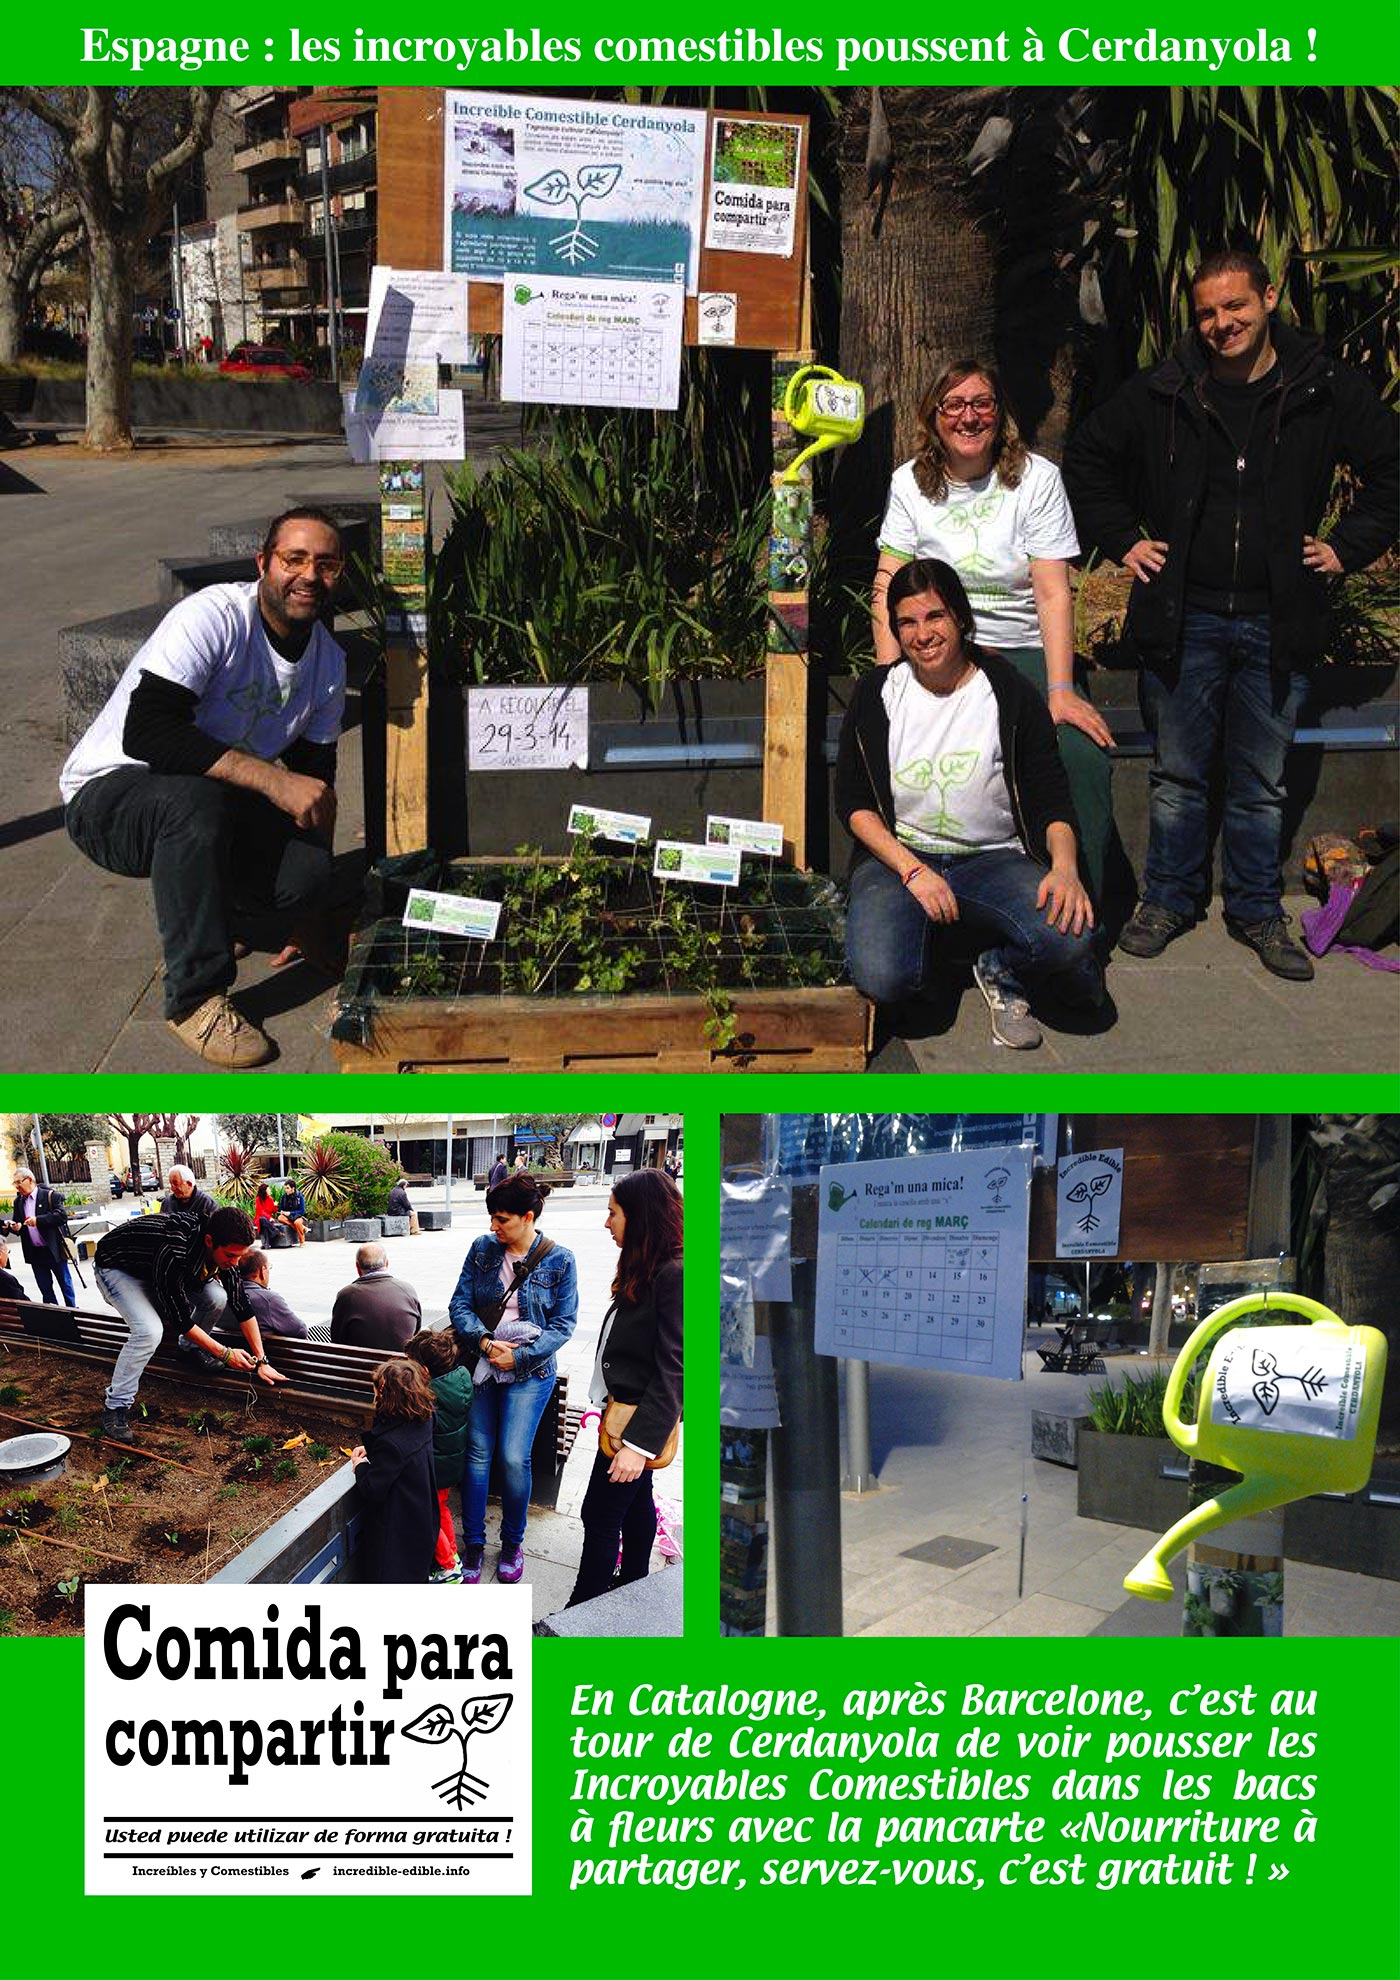 c682_incredible_edible_todmorden_espagne_catalogne_cerdanyola_agriculture_urbaine_incroyables_comestibles_w1400